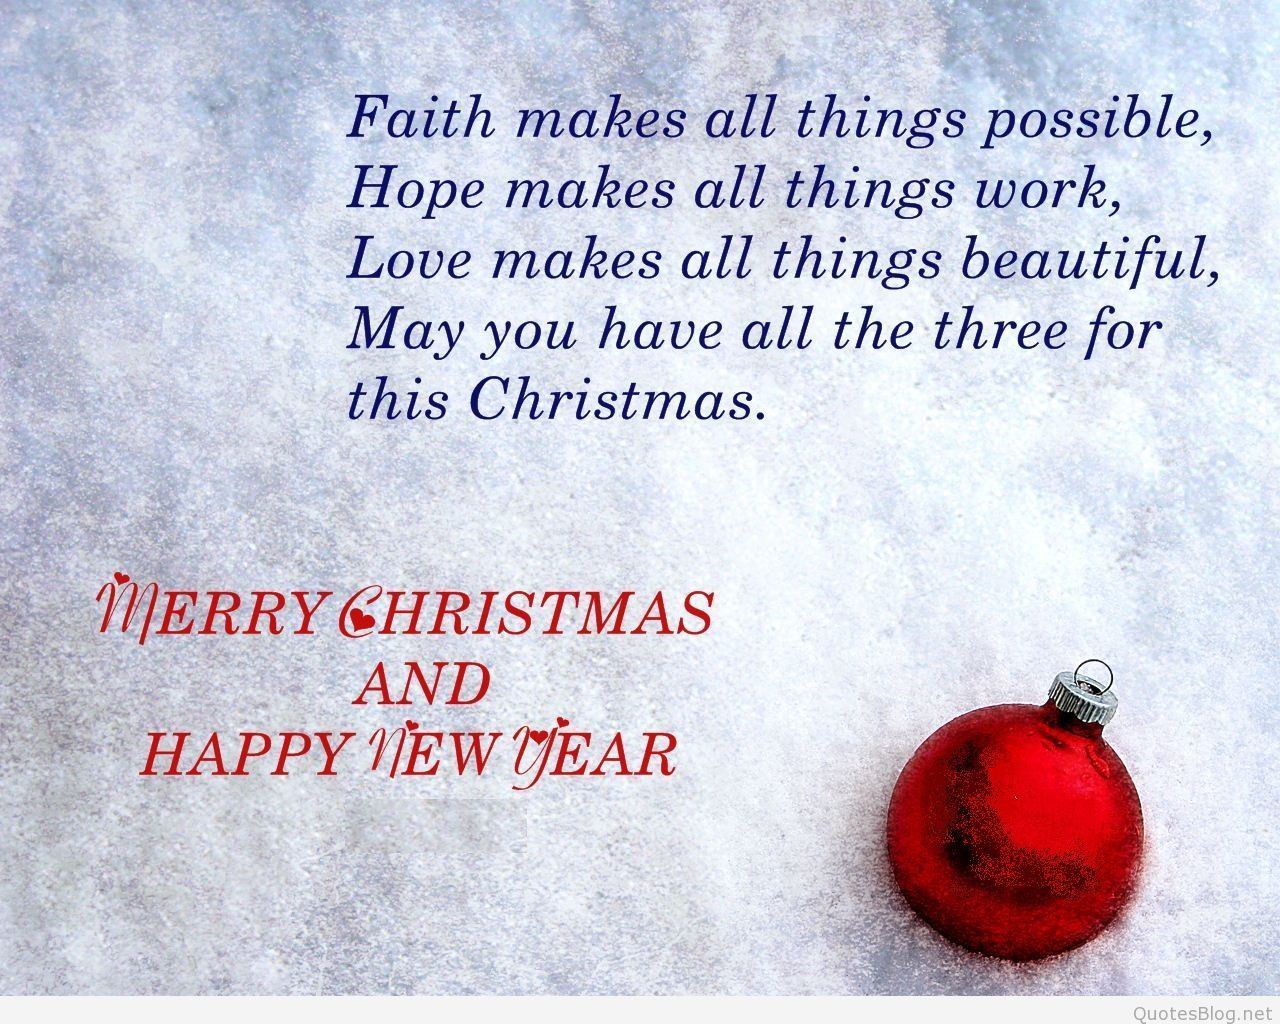 merry christmas and happy new year quotes Christmas